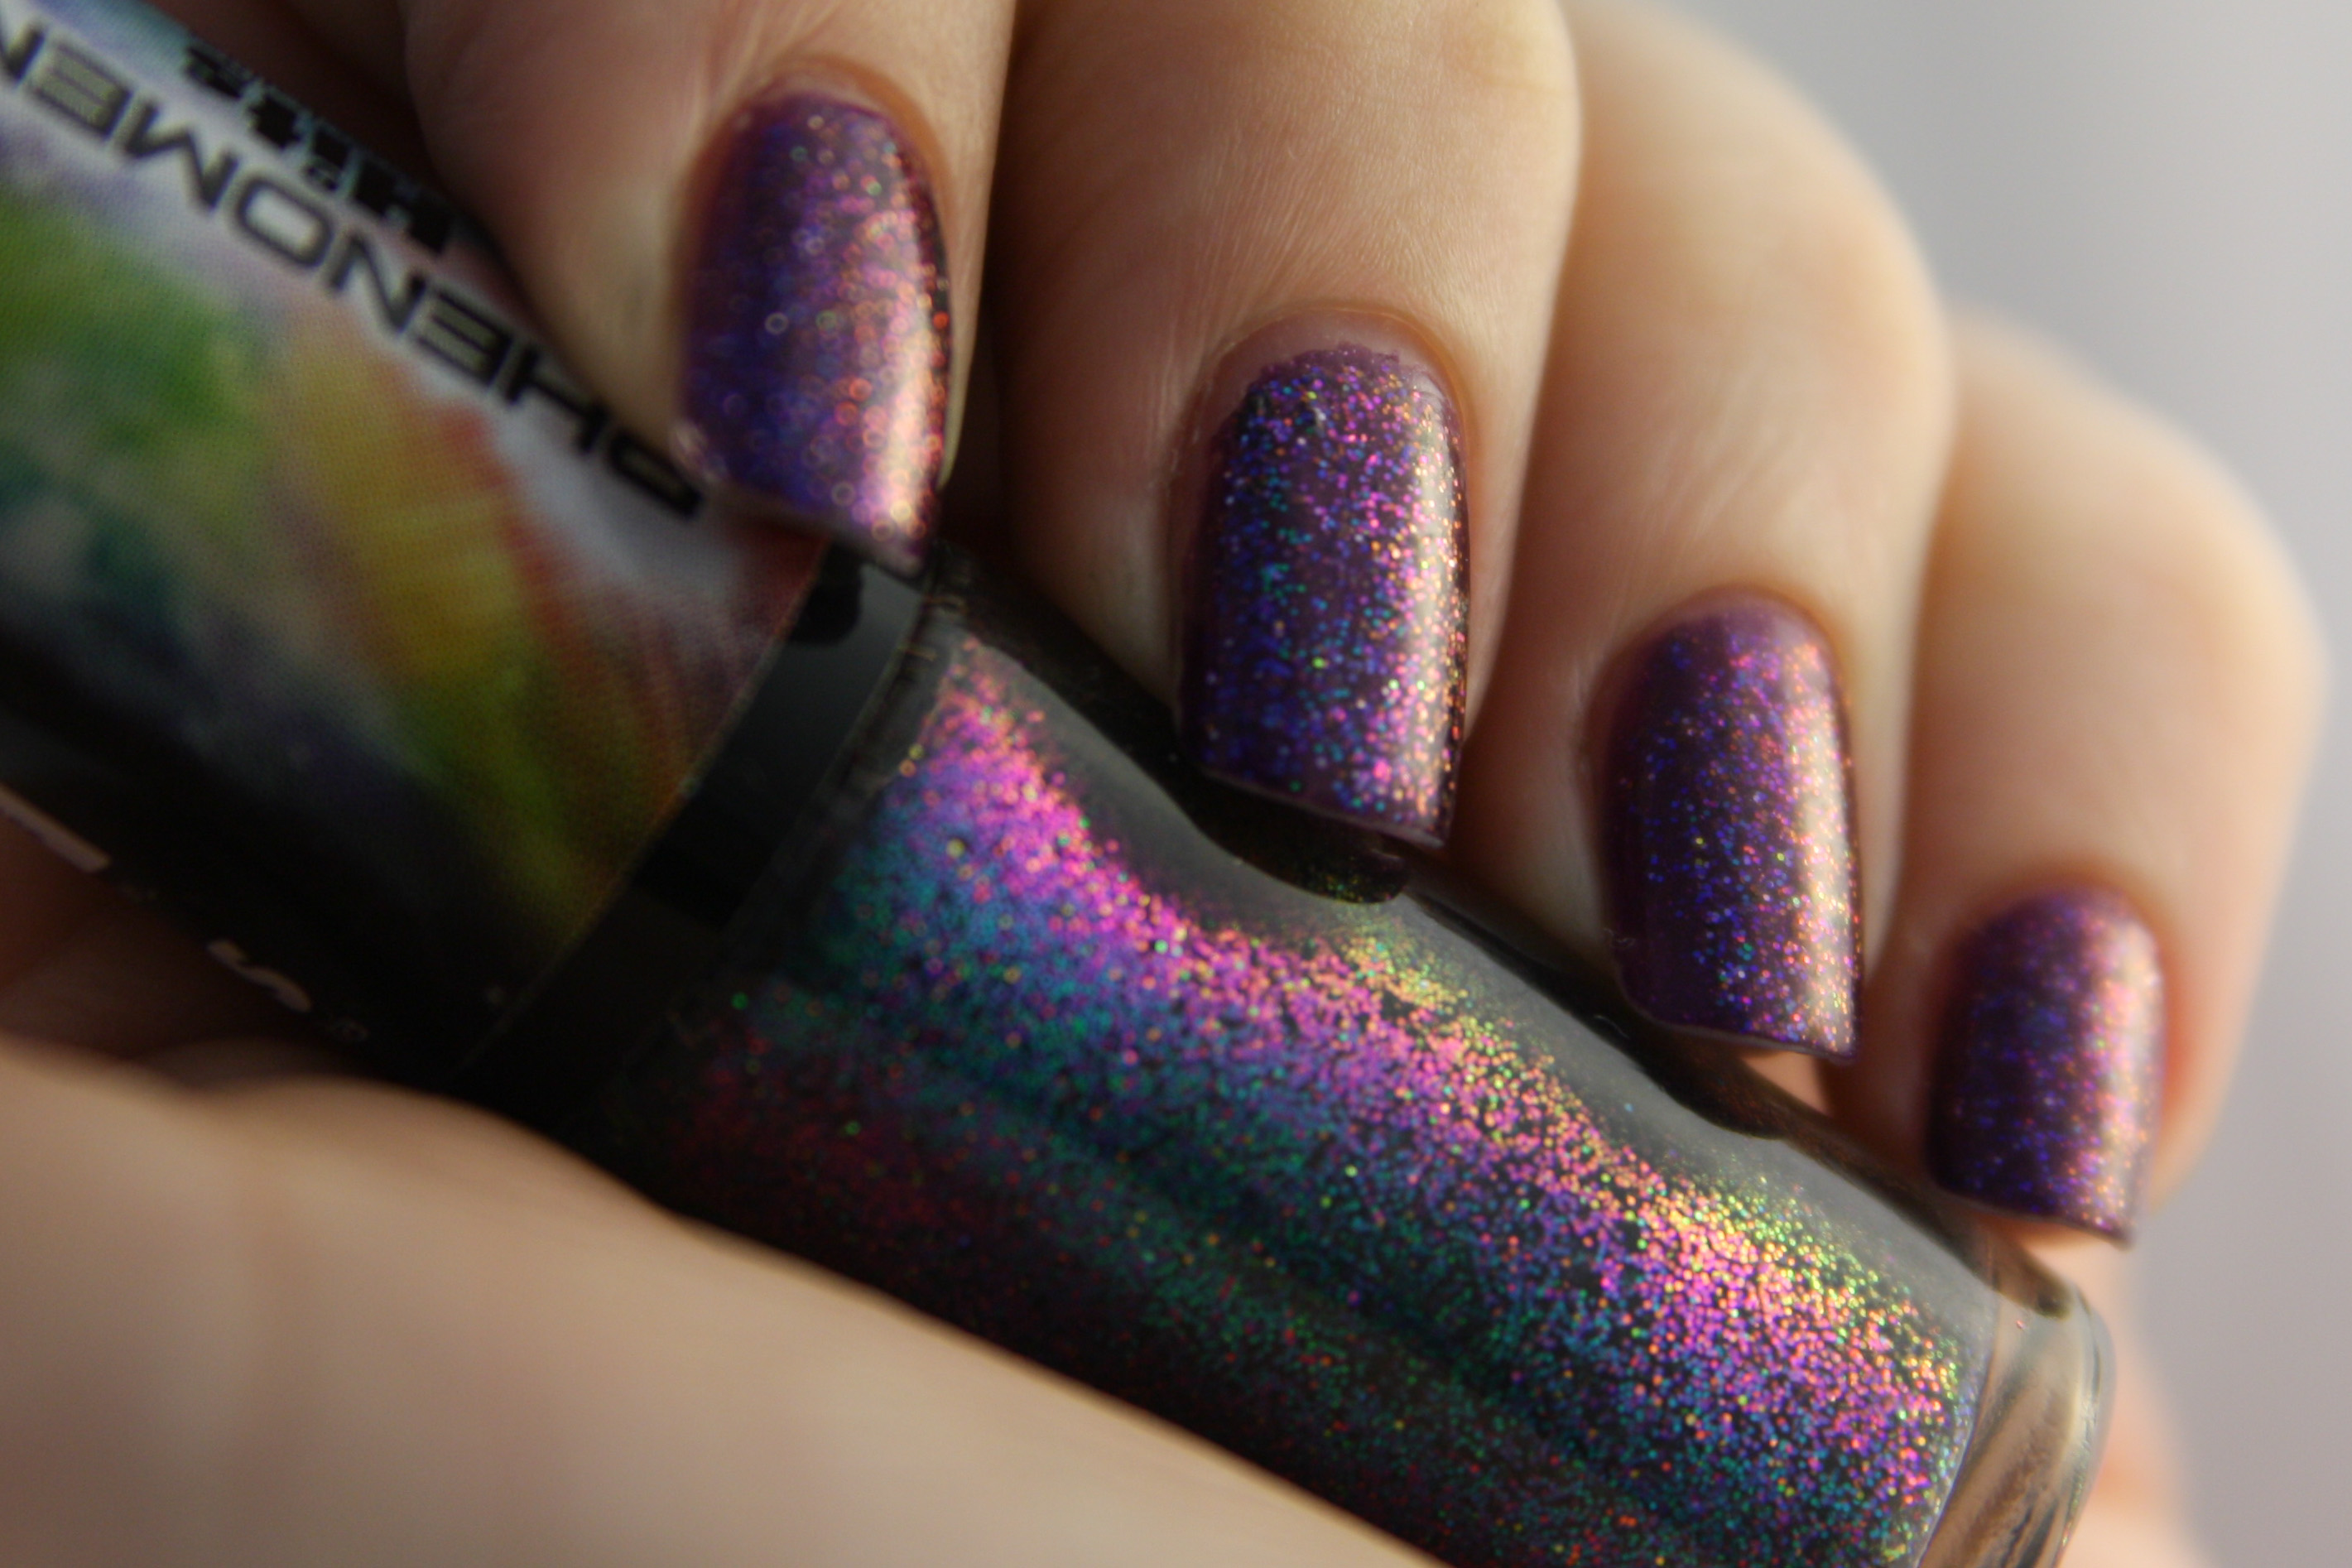 Purple and Dark Glitter Nails